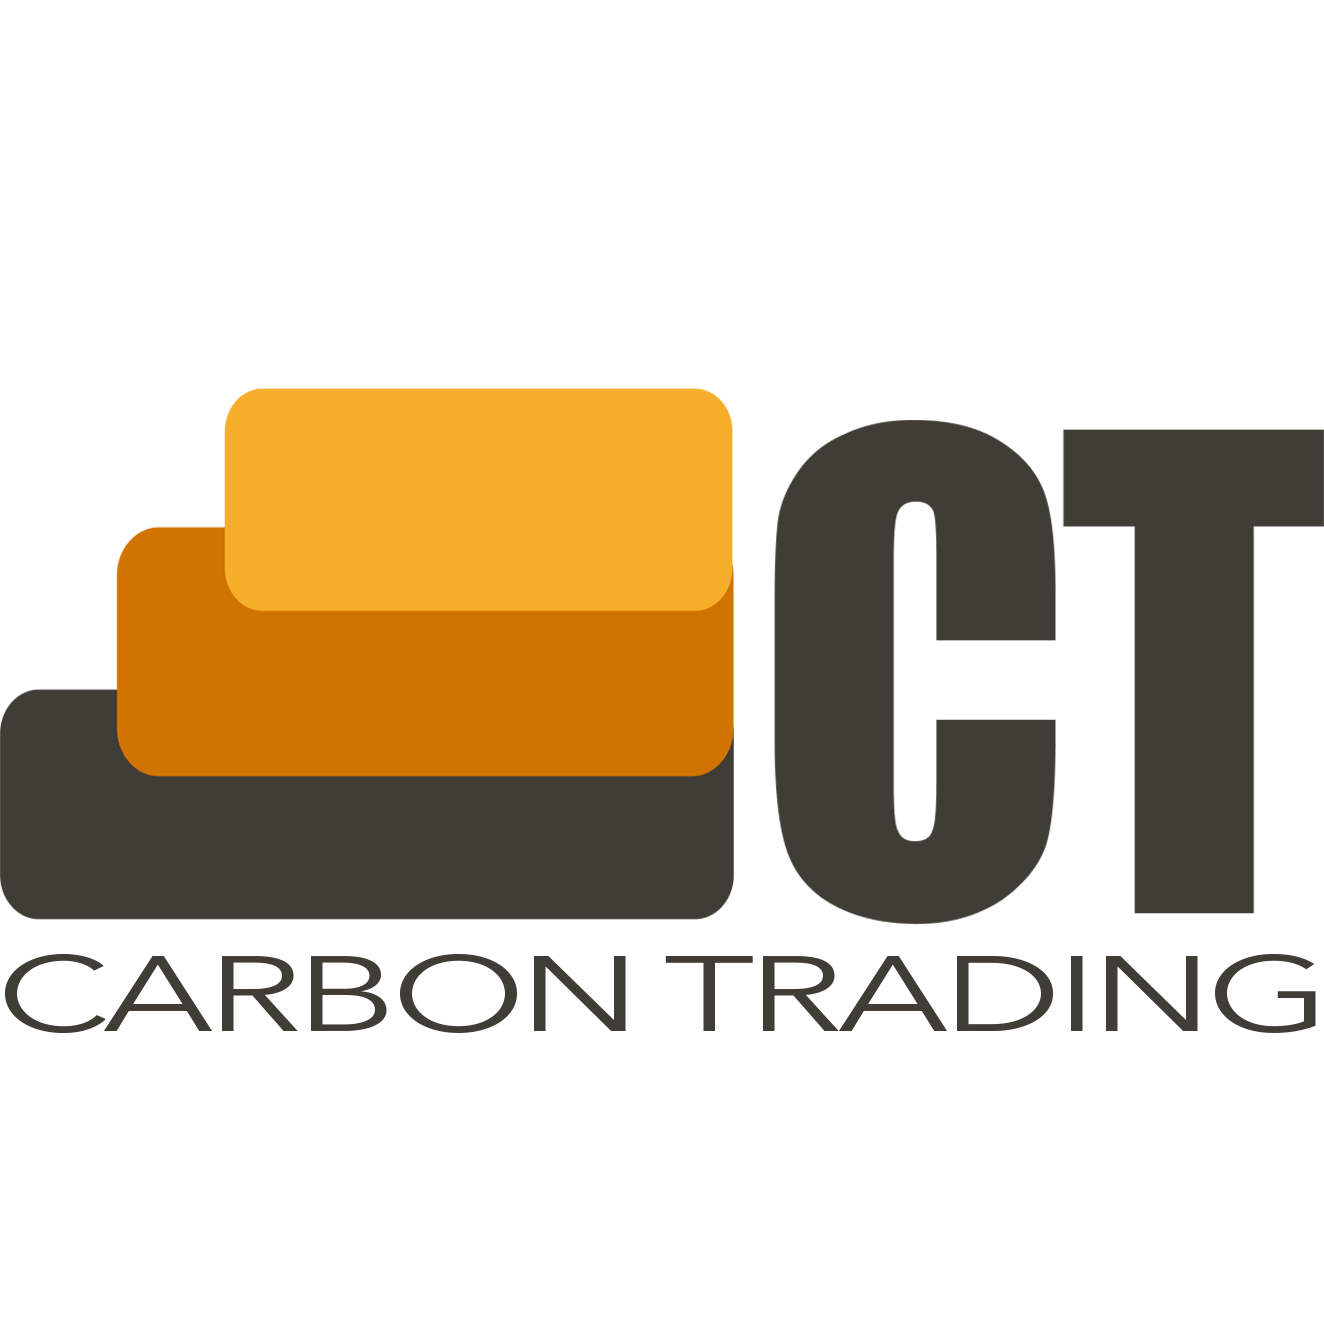 Carbontrading